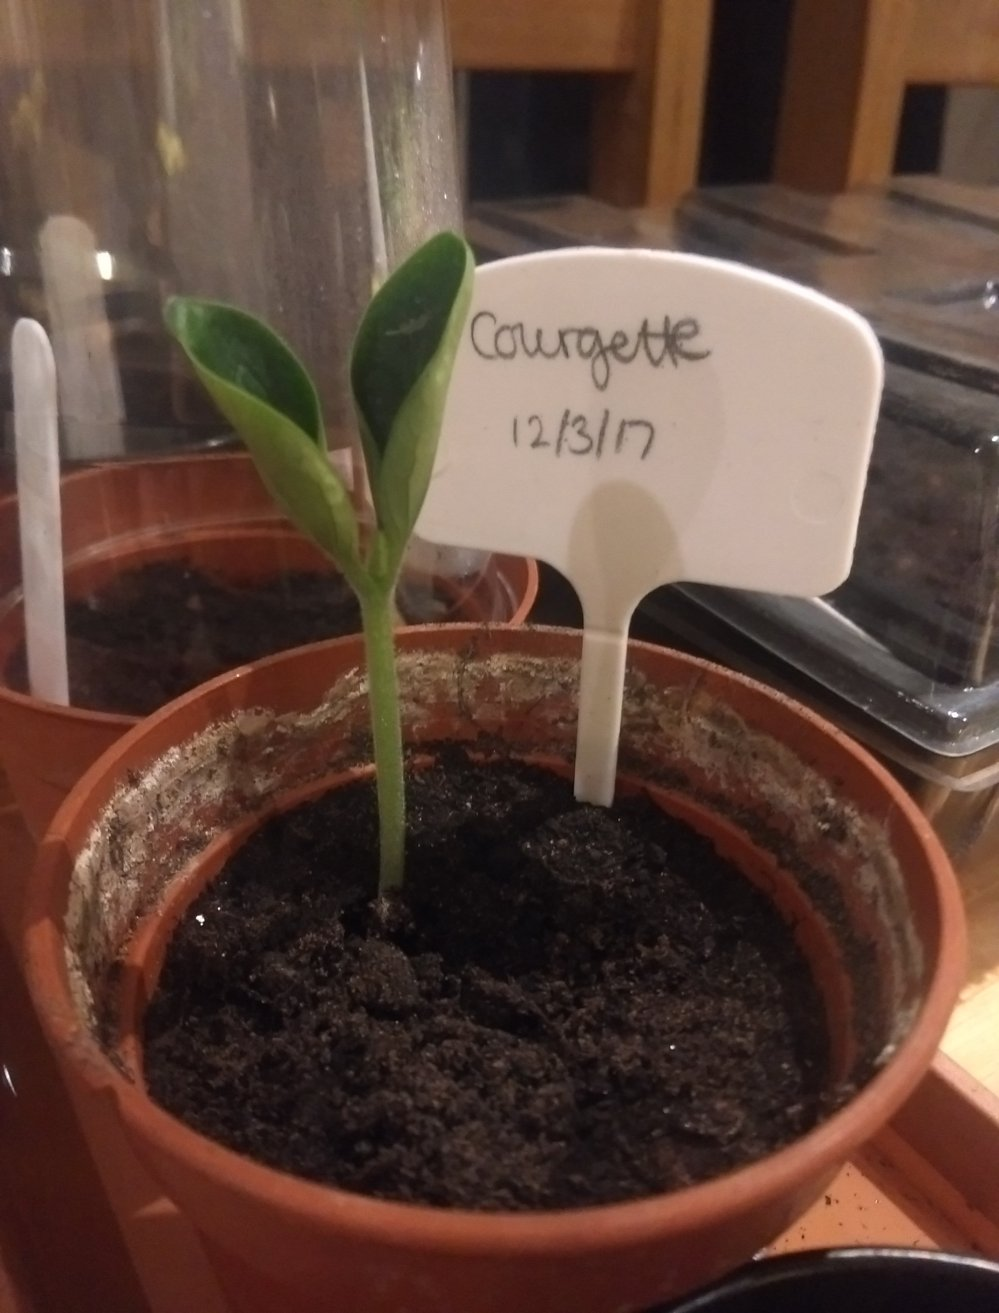 Courgette seedling in pot